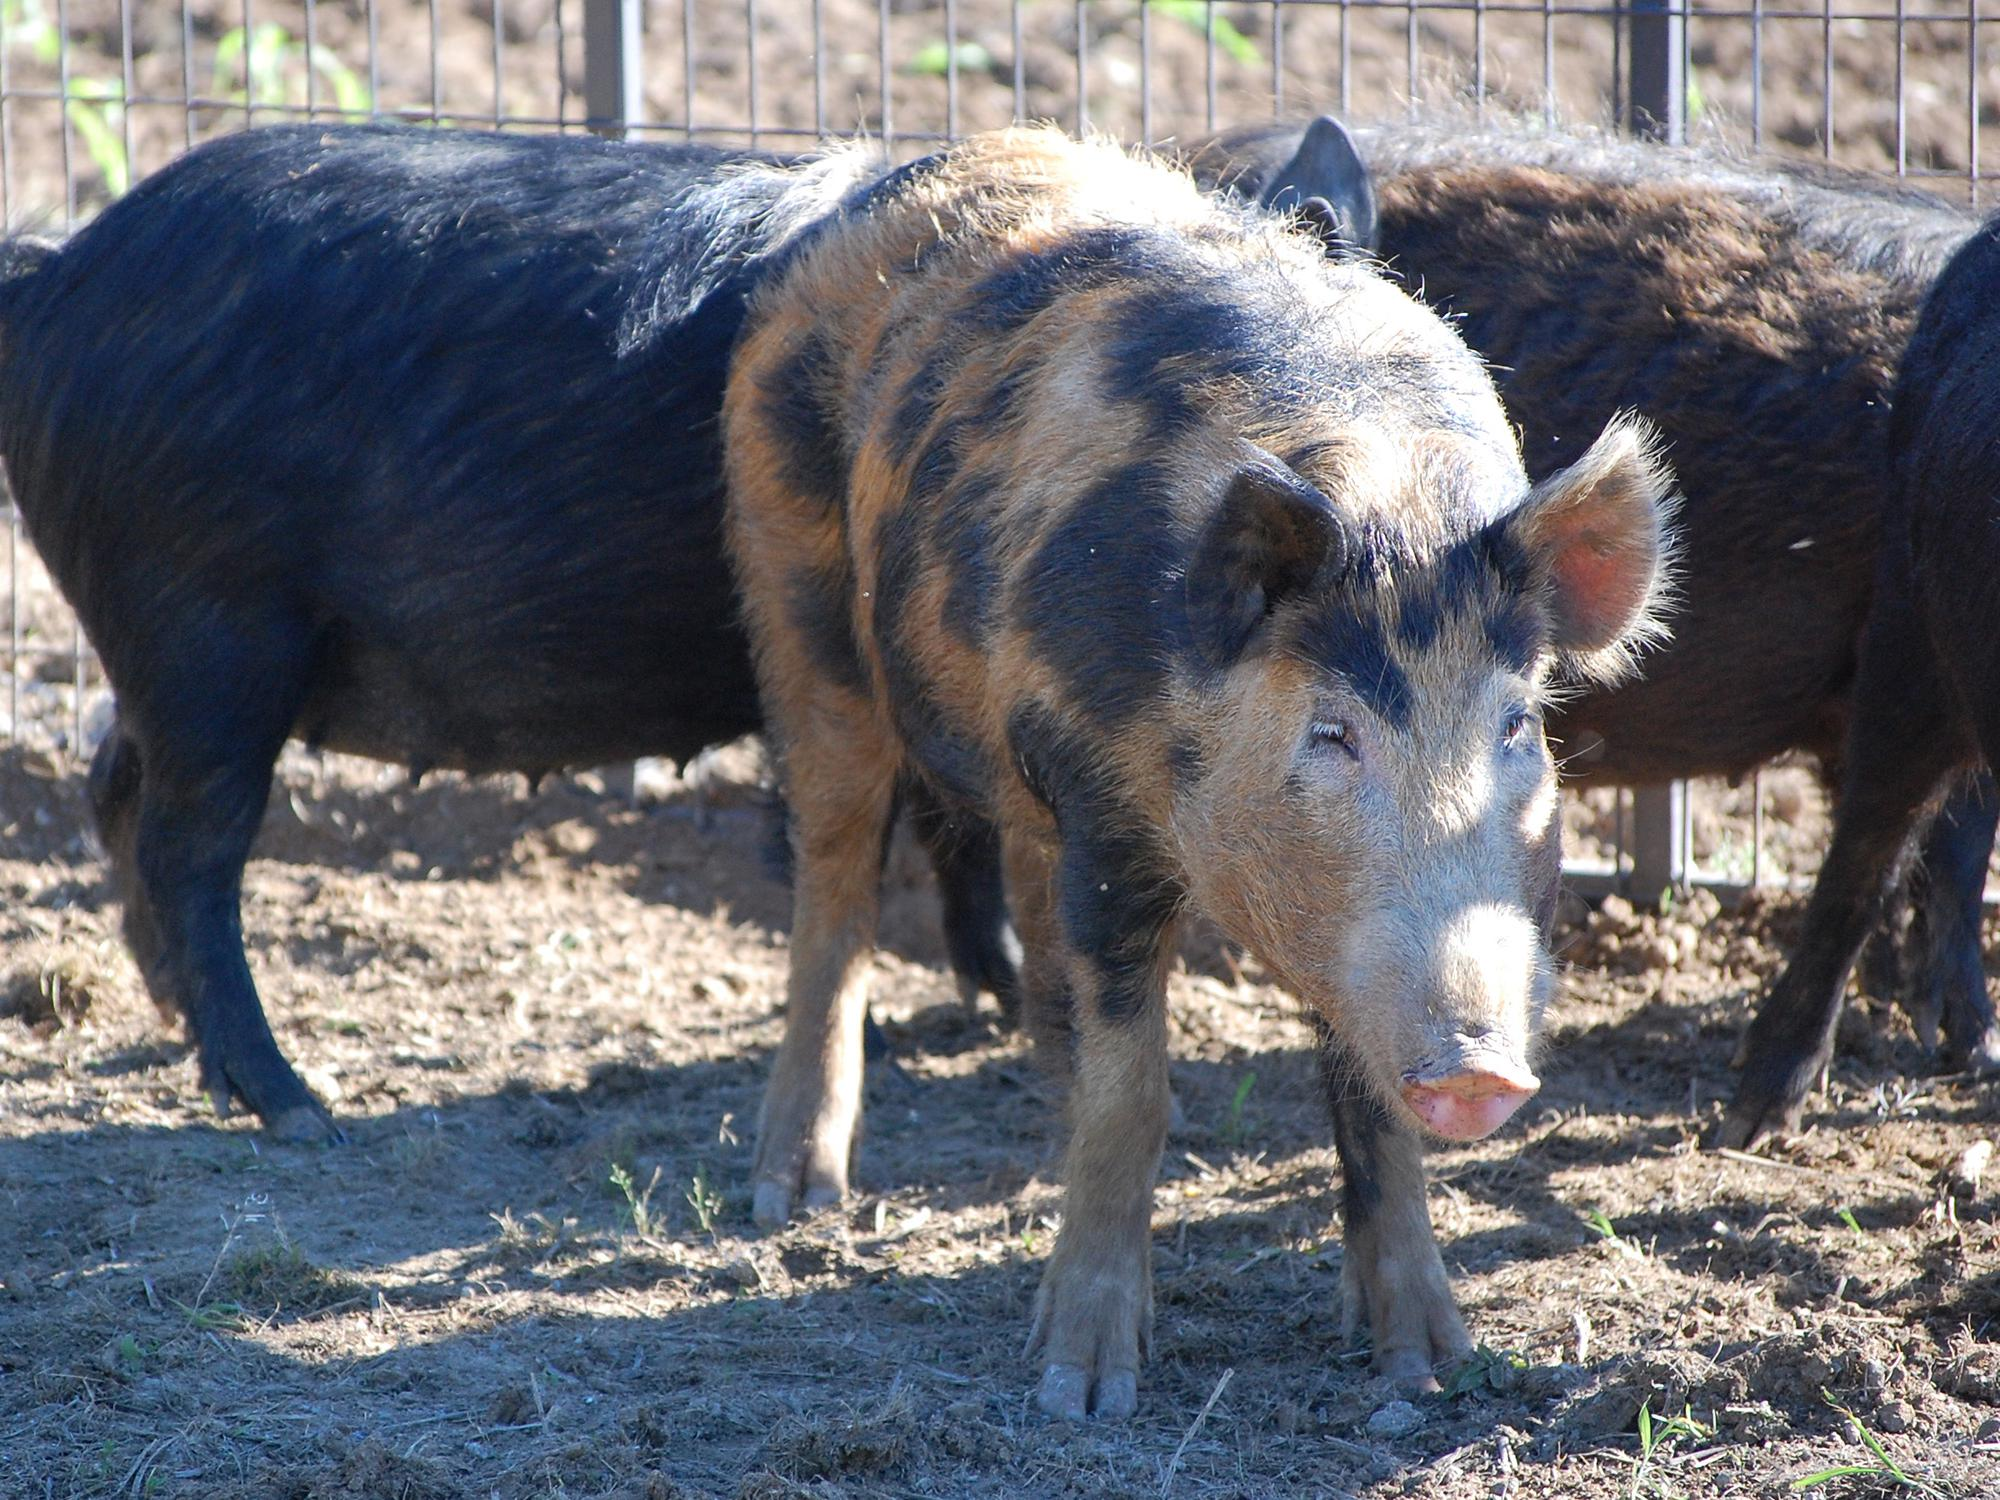 An orange wild hog with large black spots stands in a trap with two black wild hogs in the background.